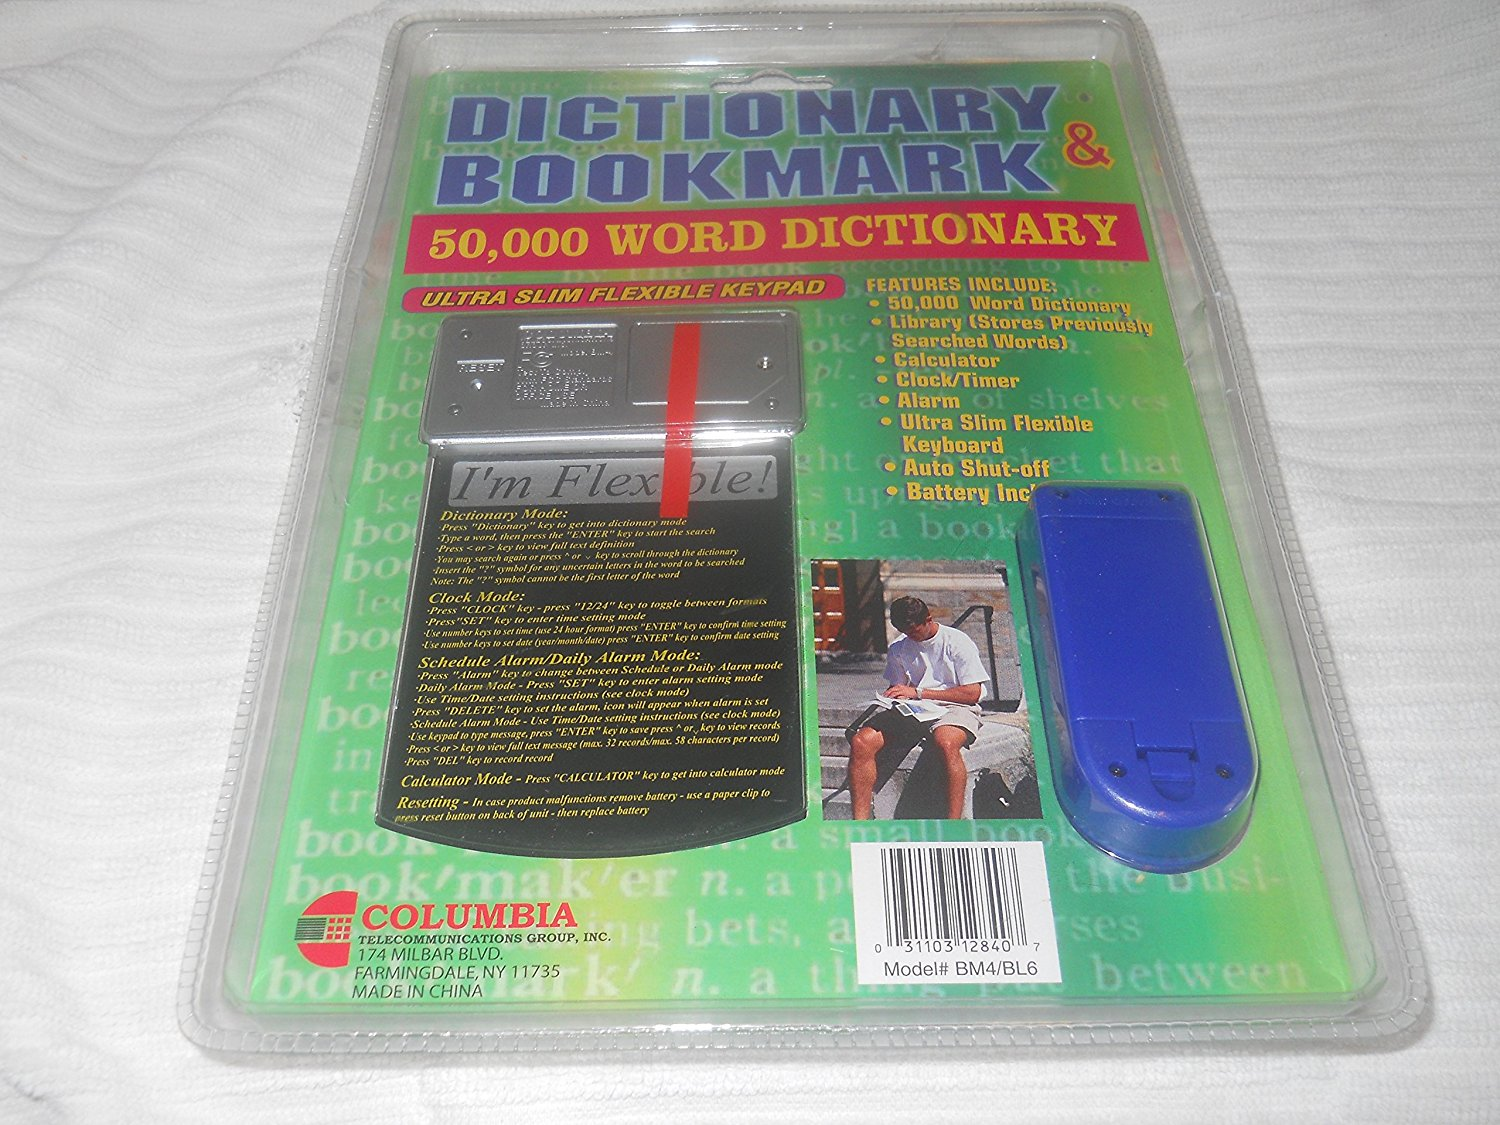 Dictionary Bookmark & 50,000 Word Dictionary